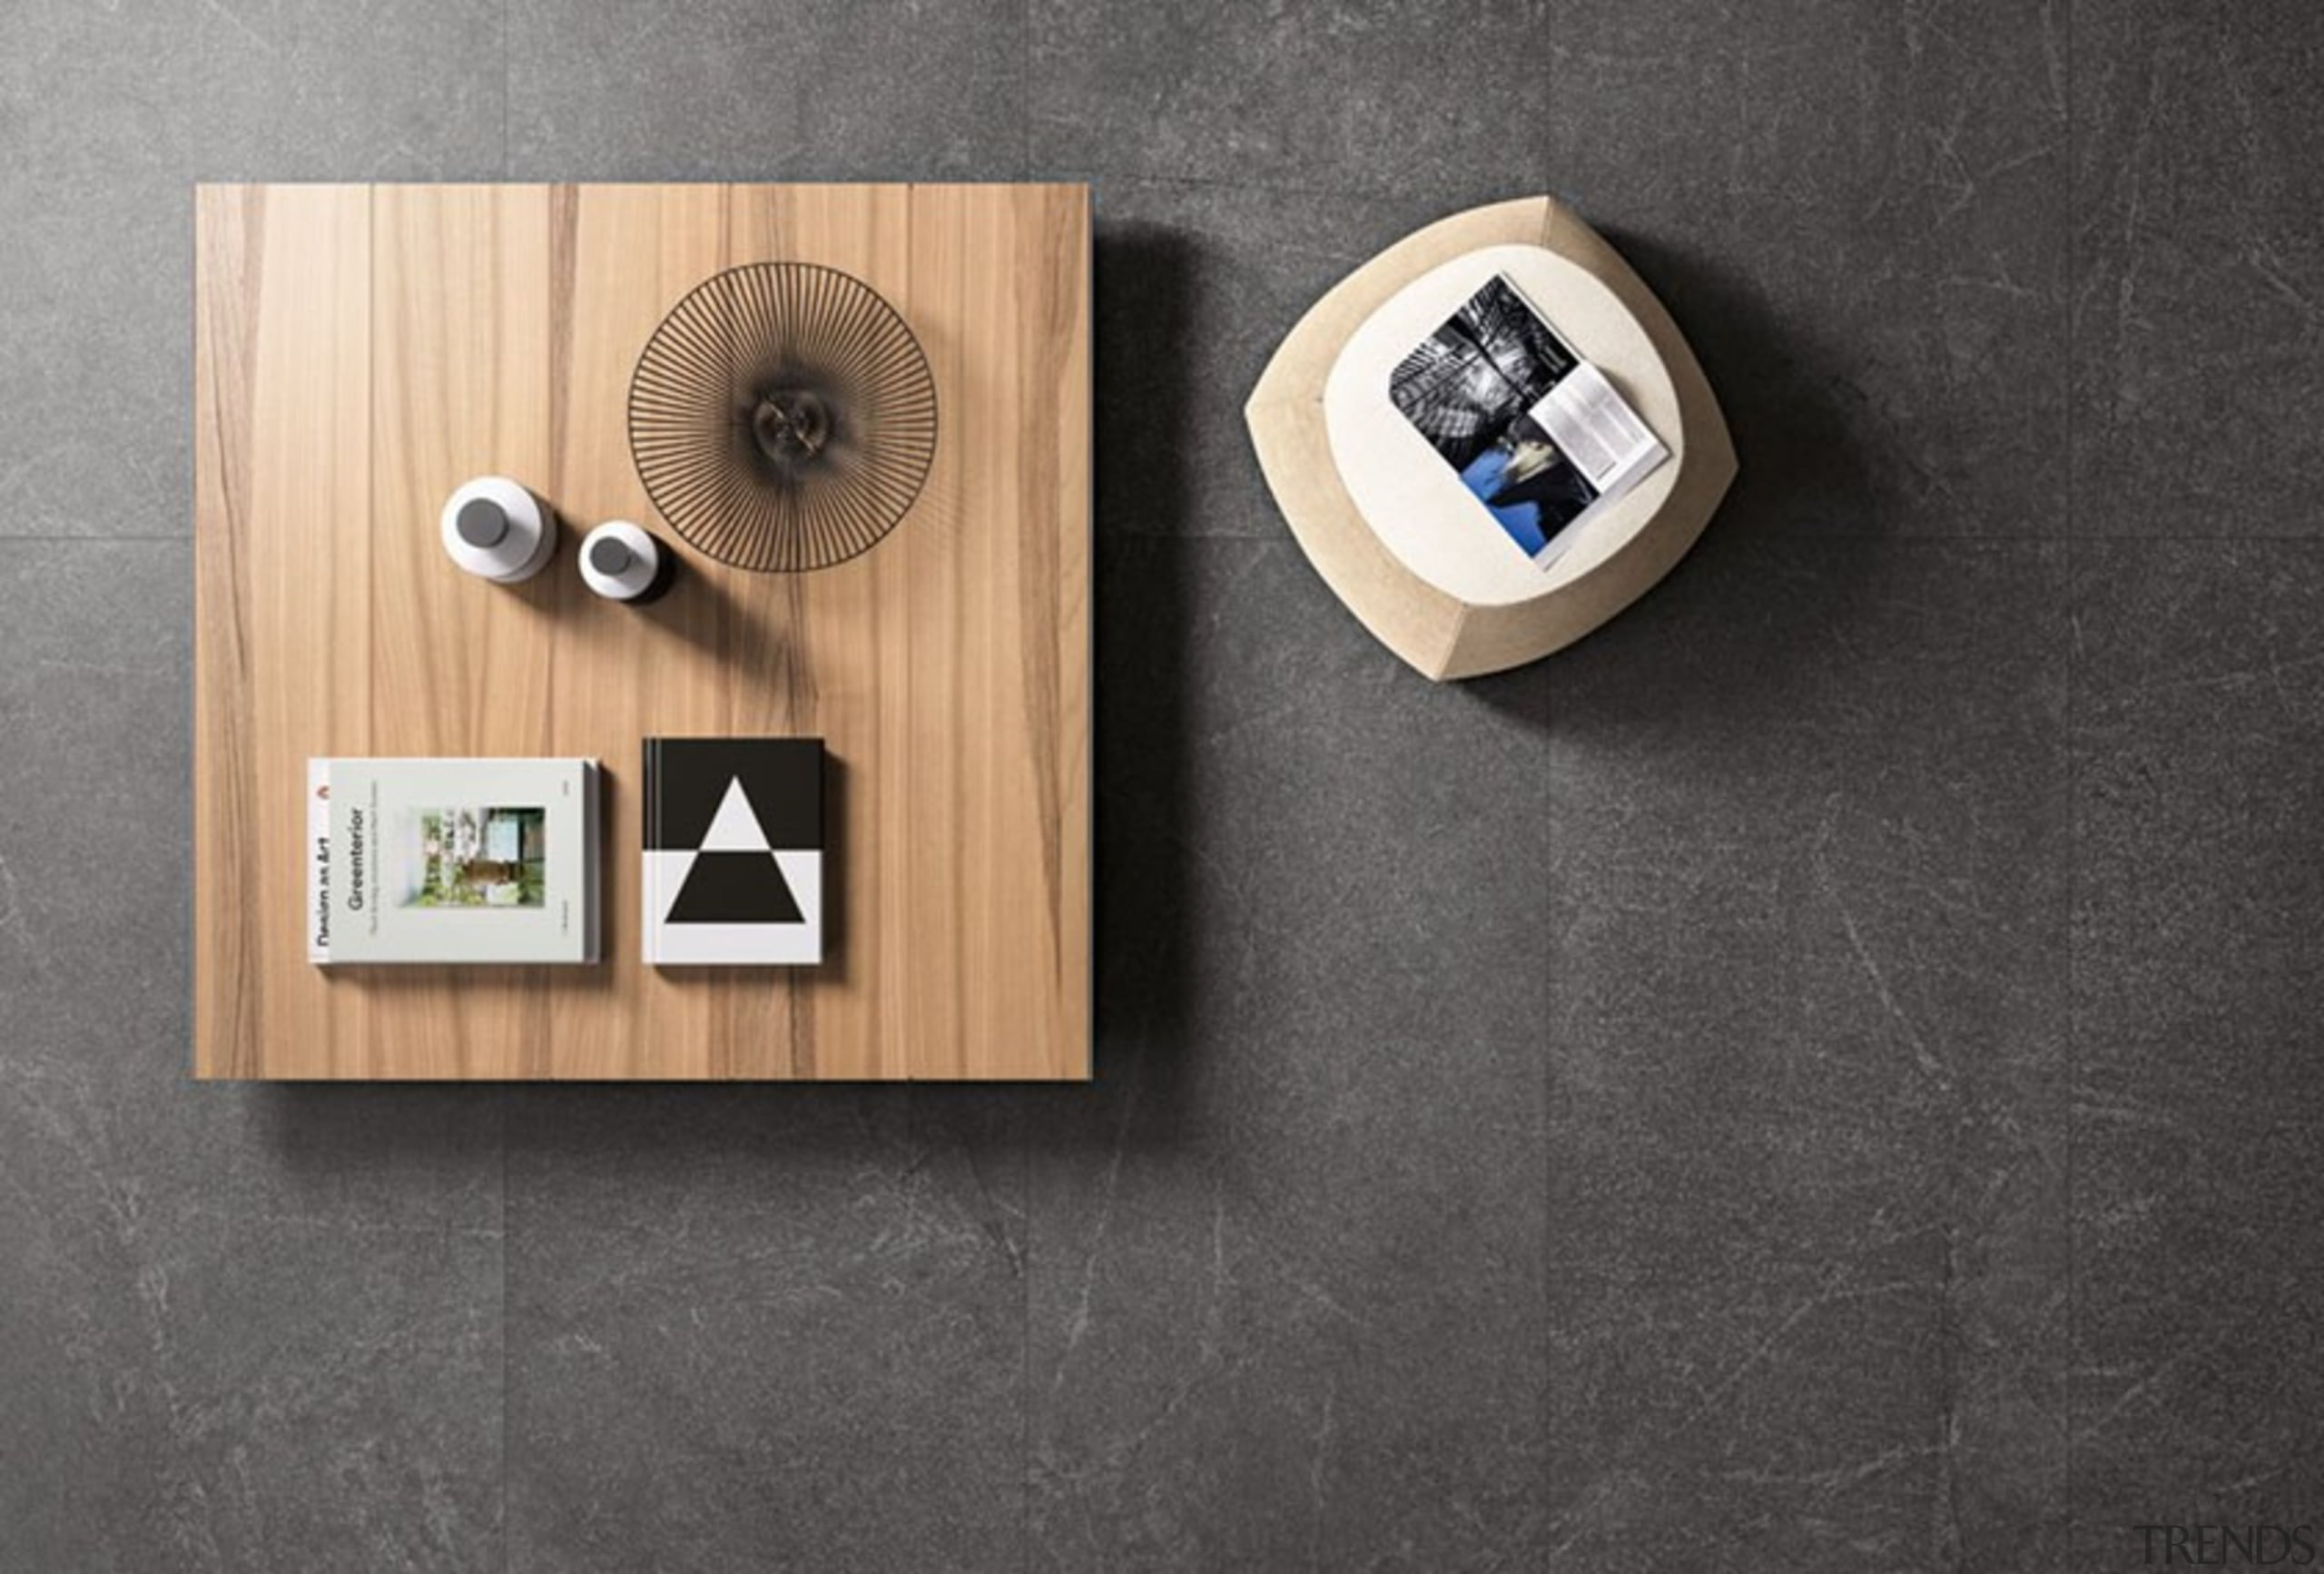 The Horizon collection is inspired by the elegant black, gray